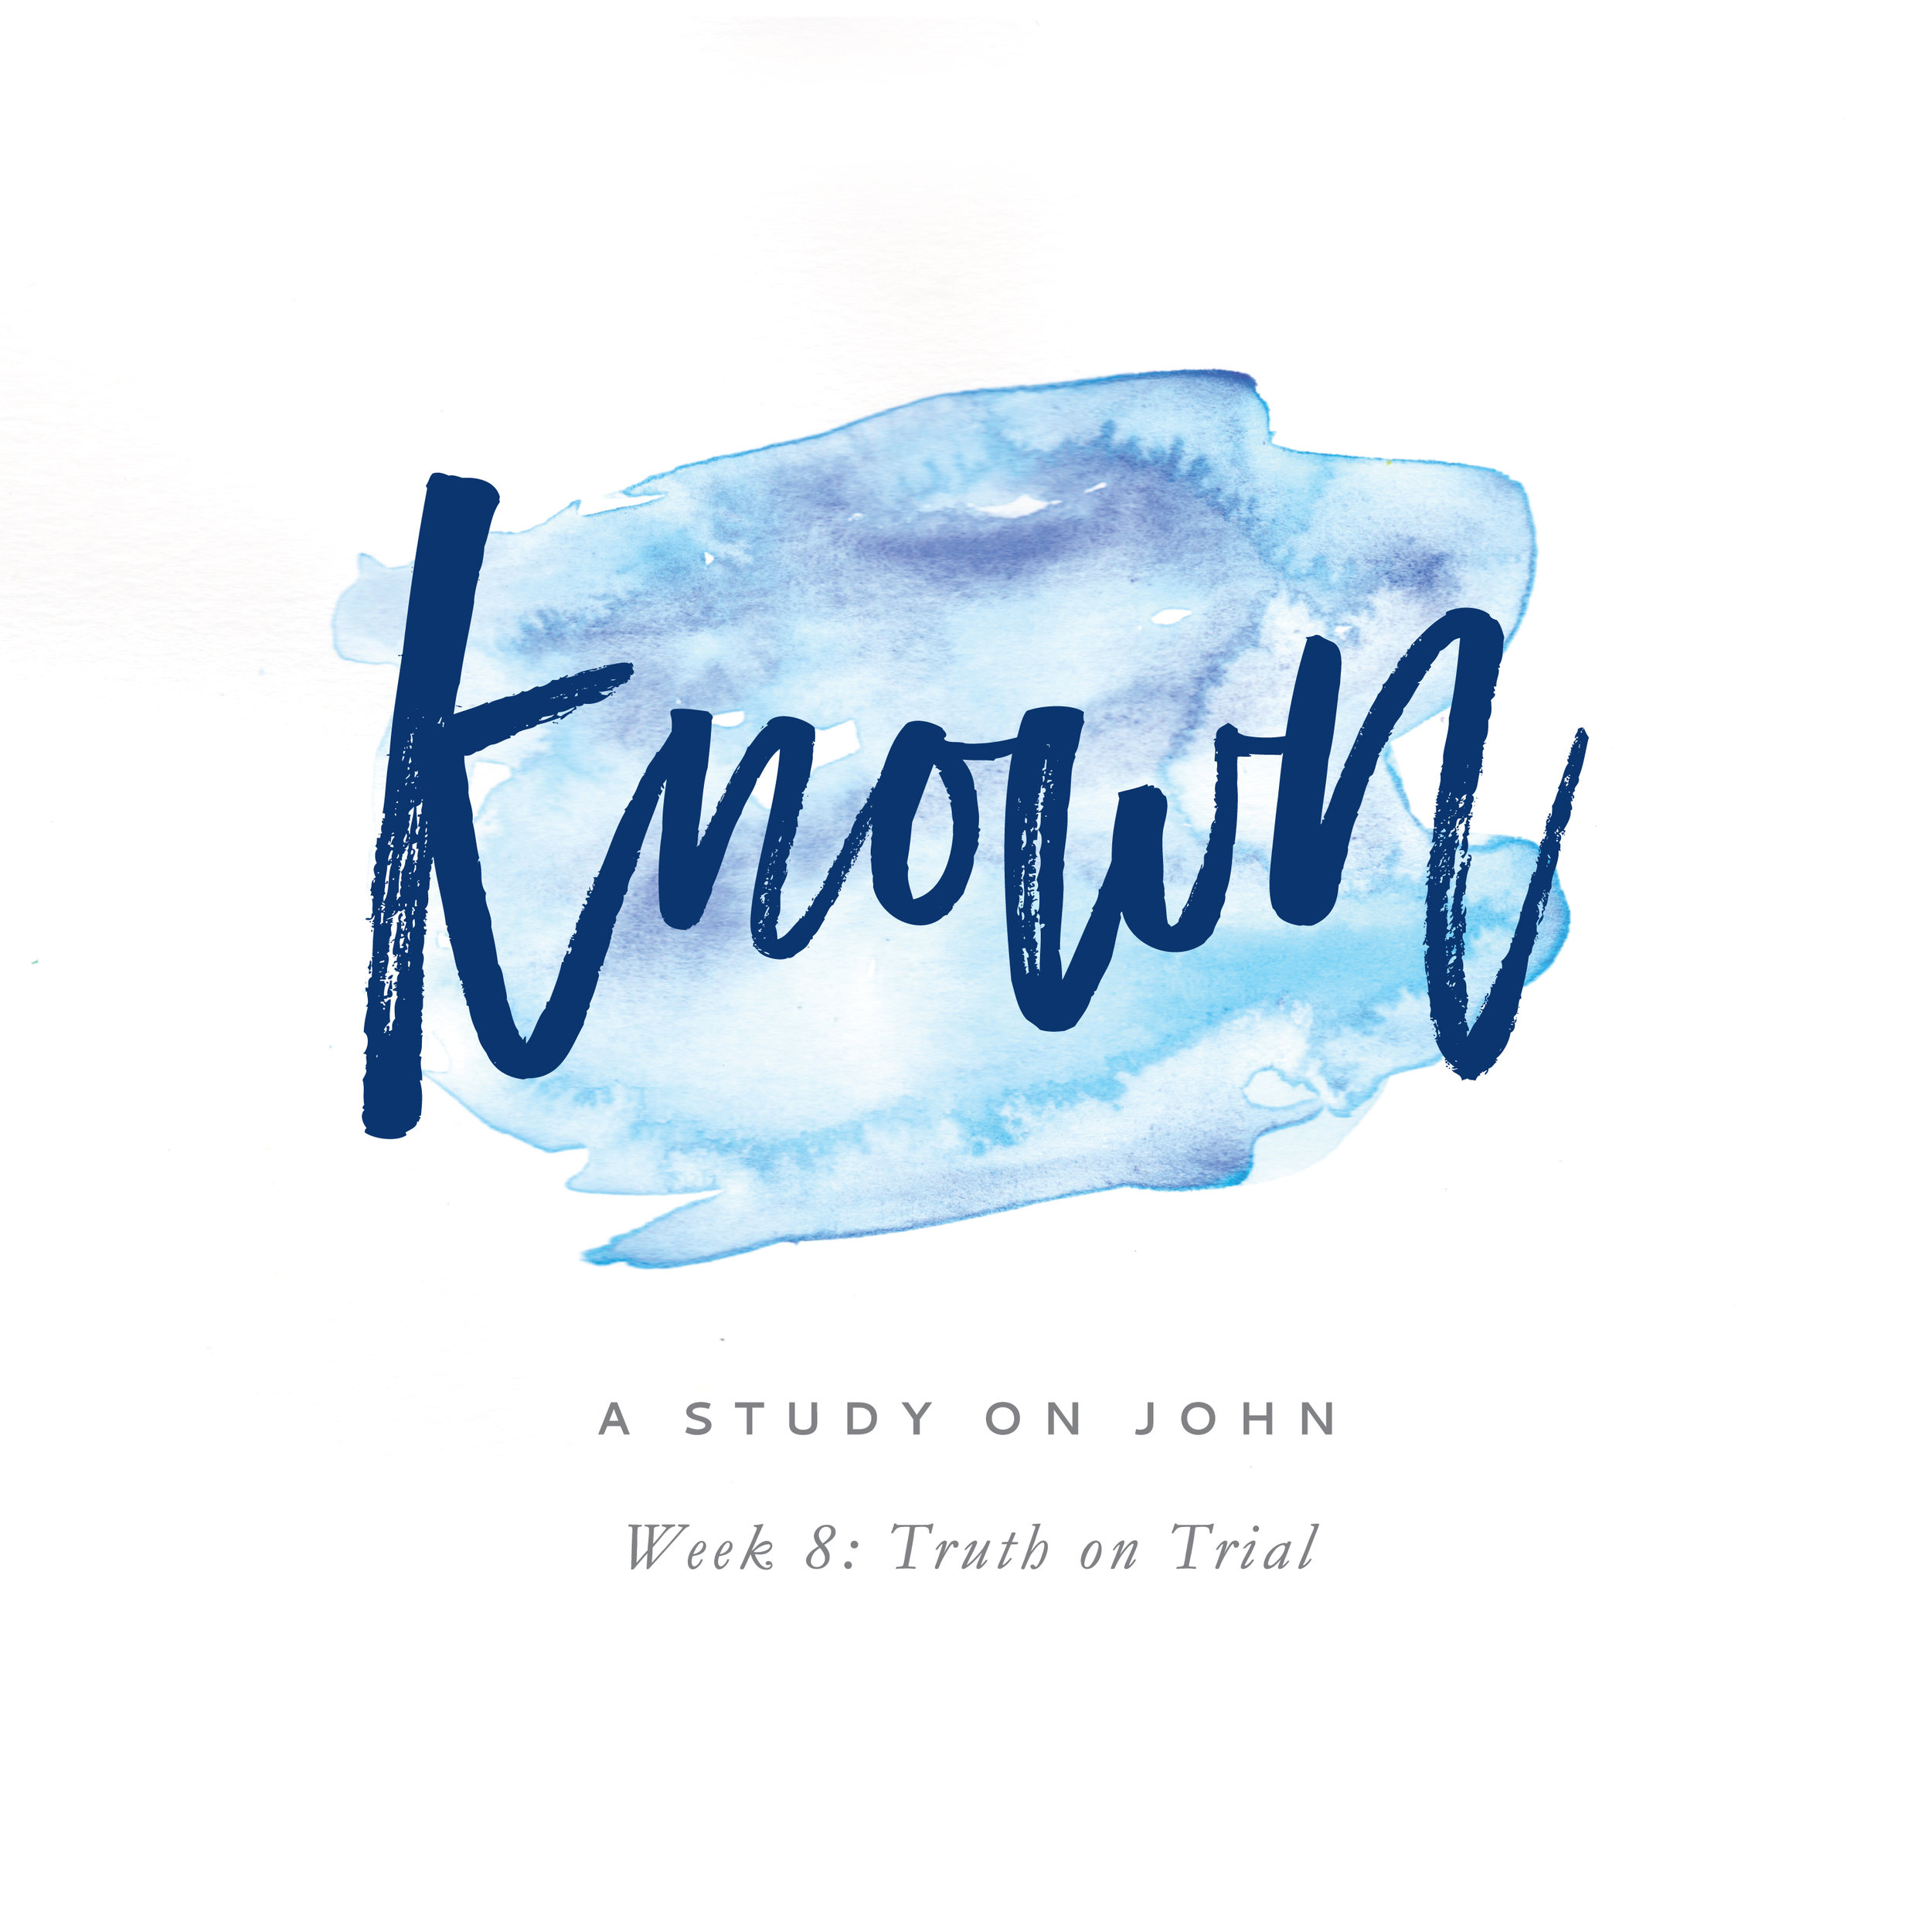 Known: A Study on John by Leslie Ann Jones. Week 8 Podcast. In this lesson, we discuss John 18-19 and the truth of Jesus' identity as the Lamb of God sent to take away the sins of the world. The lesson corresponds with page 51 (Week 8: Truth on Trial) of the learner workbook, available for download at leslieannjones.com/known.